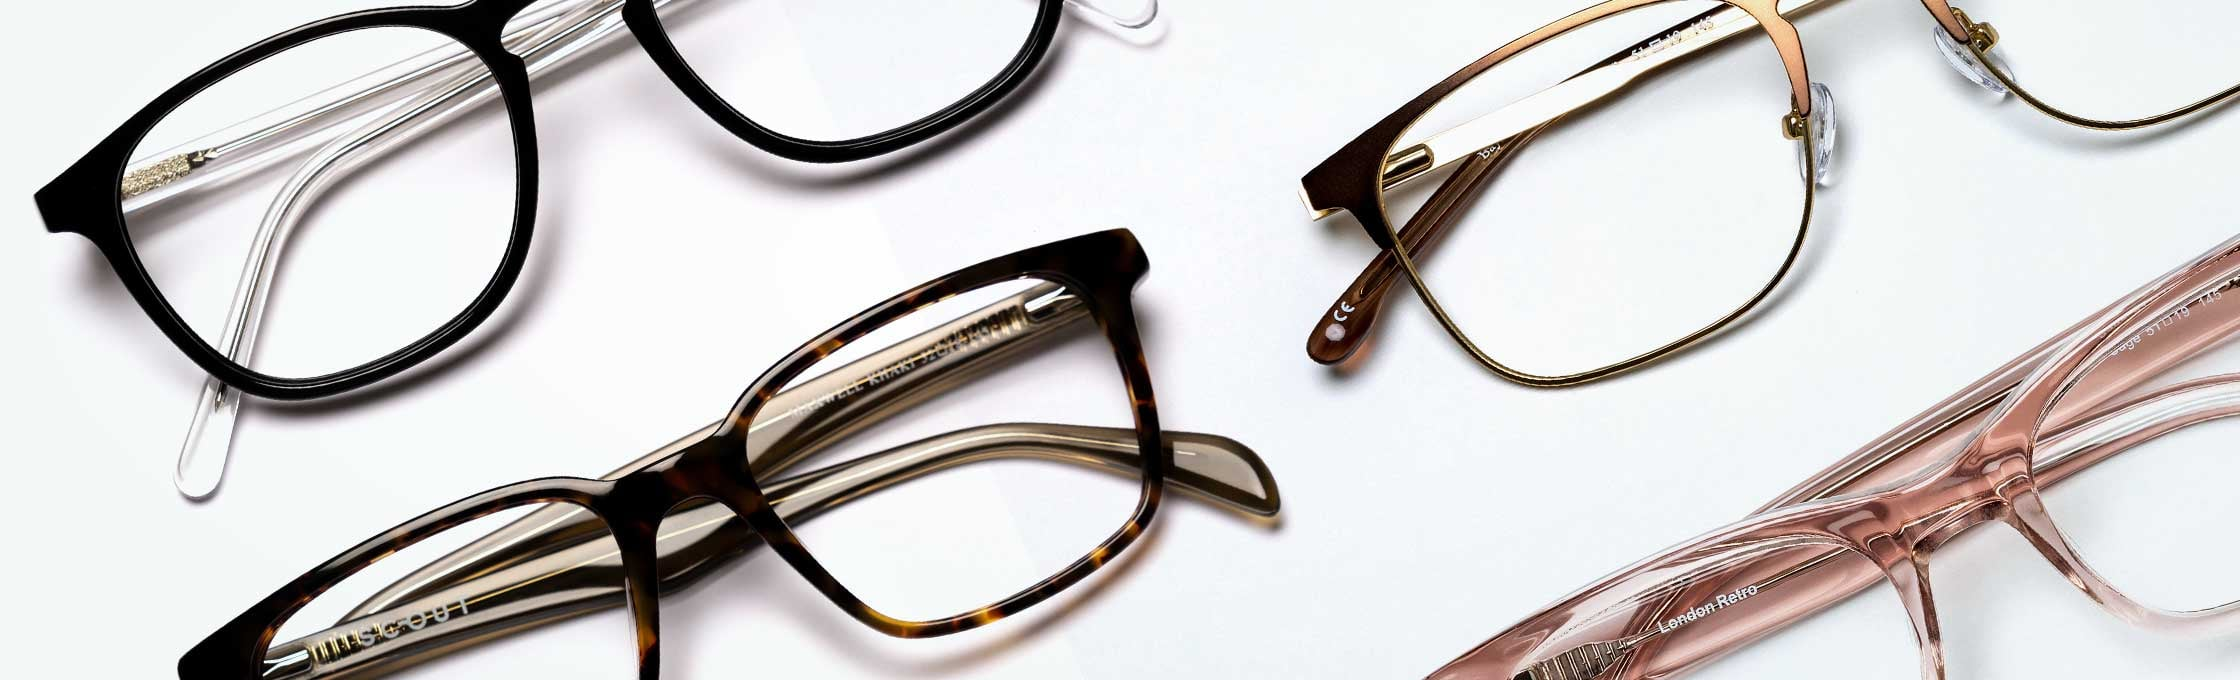 Get the quality glasses at a cheaper price from Glasses Direct